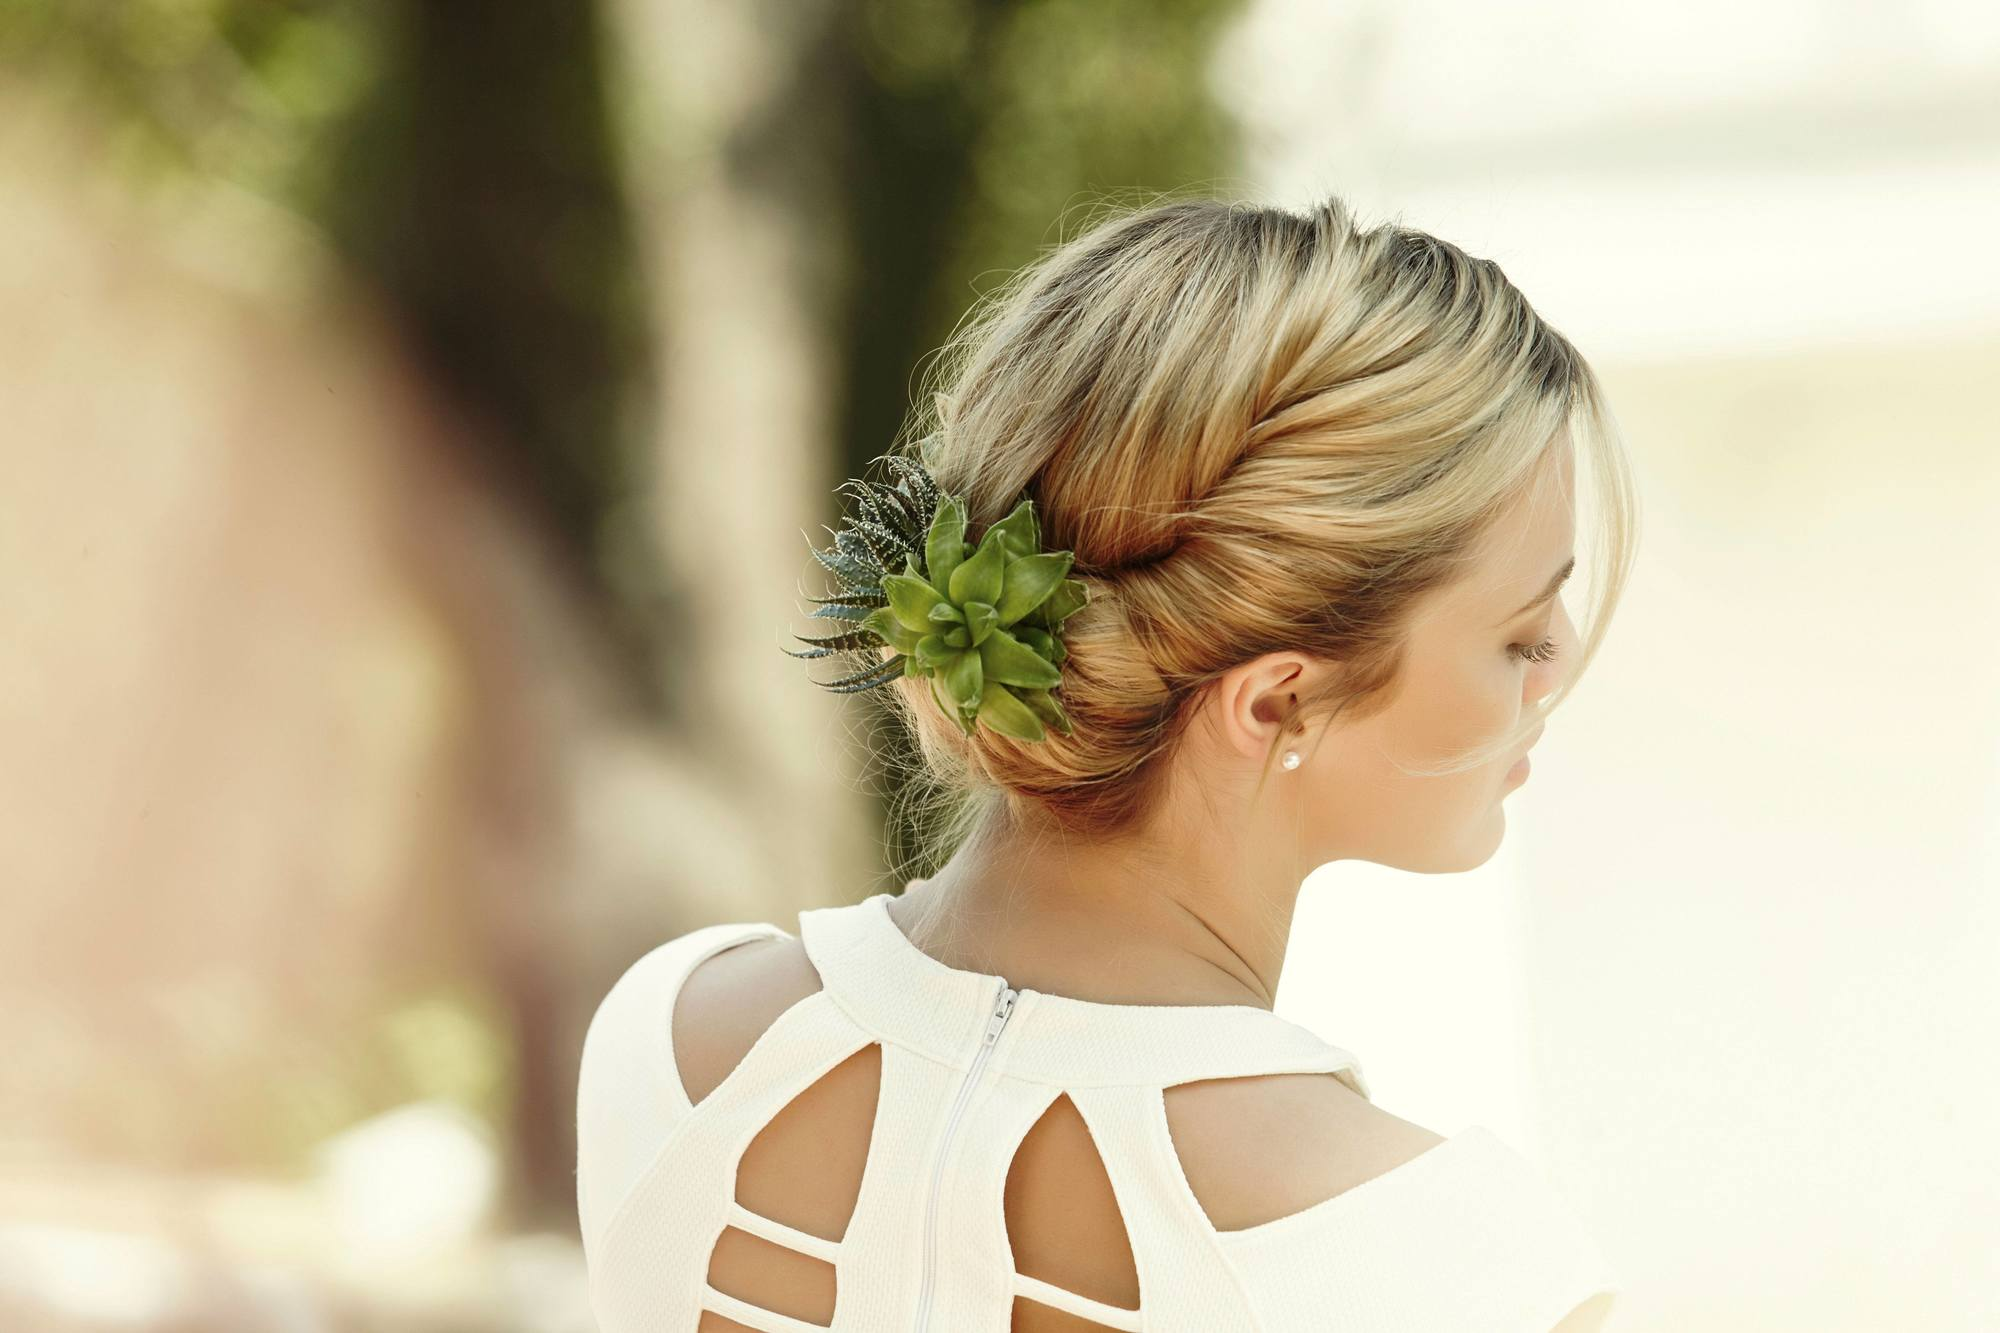 Updo Hairstyles For Work Looks For Any Hair Type - Croissant hairstyle bun